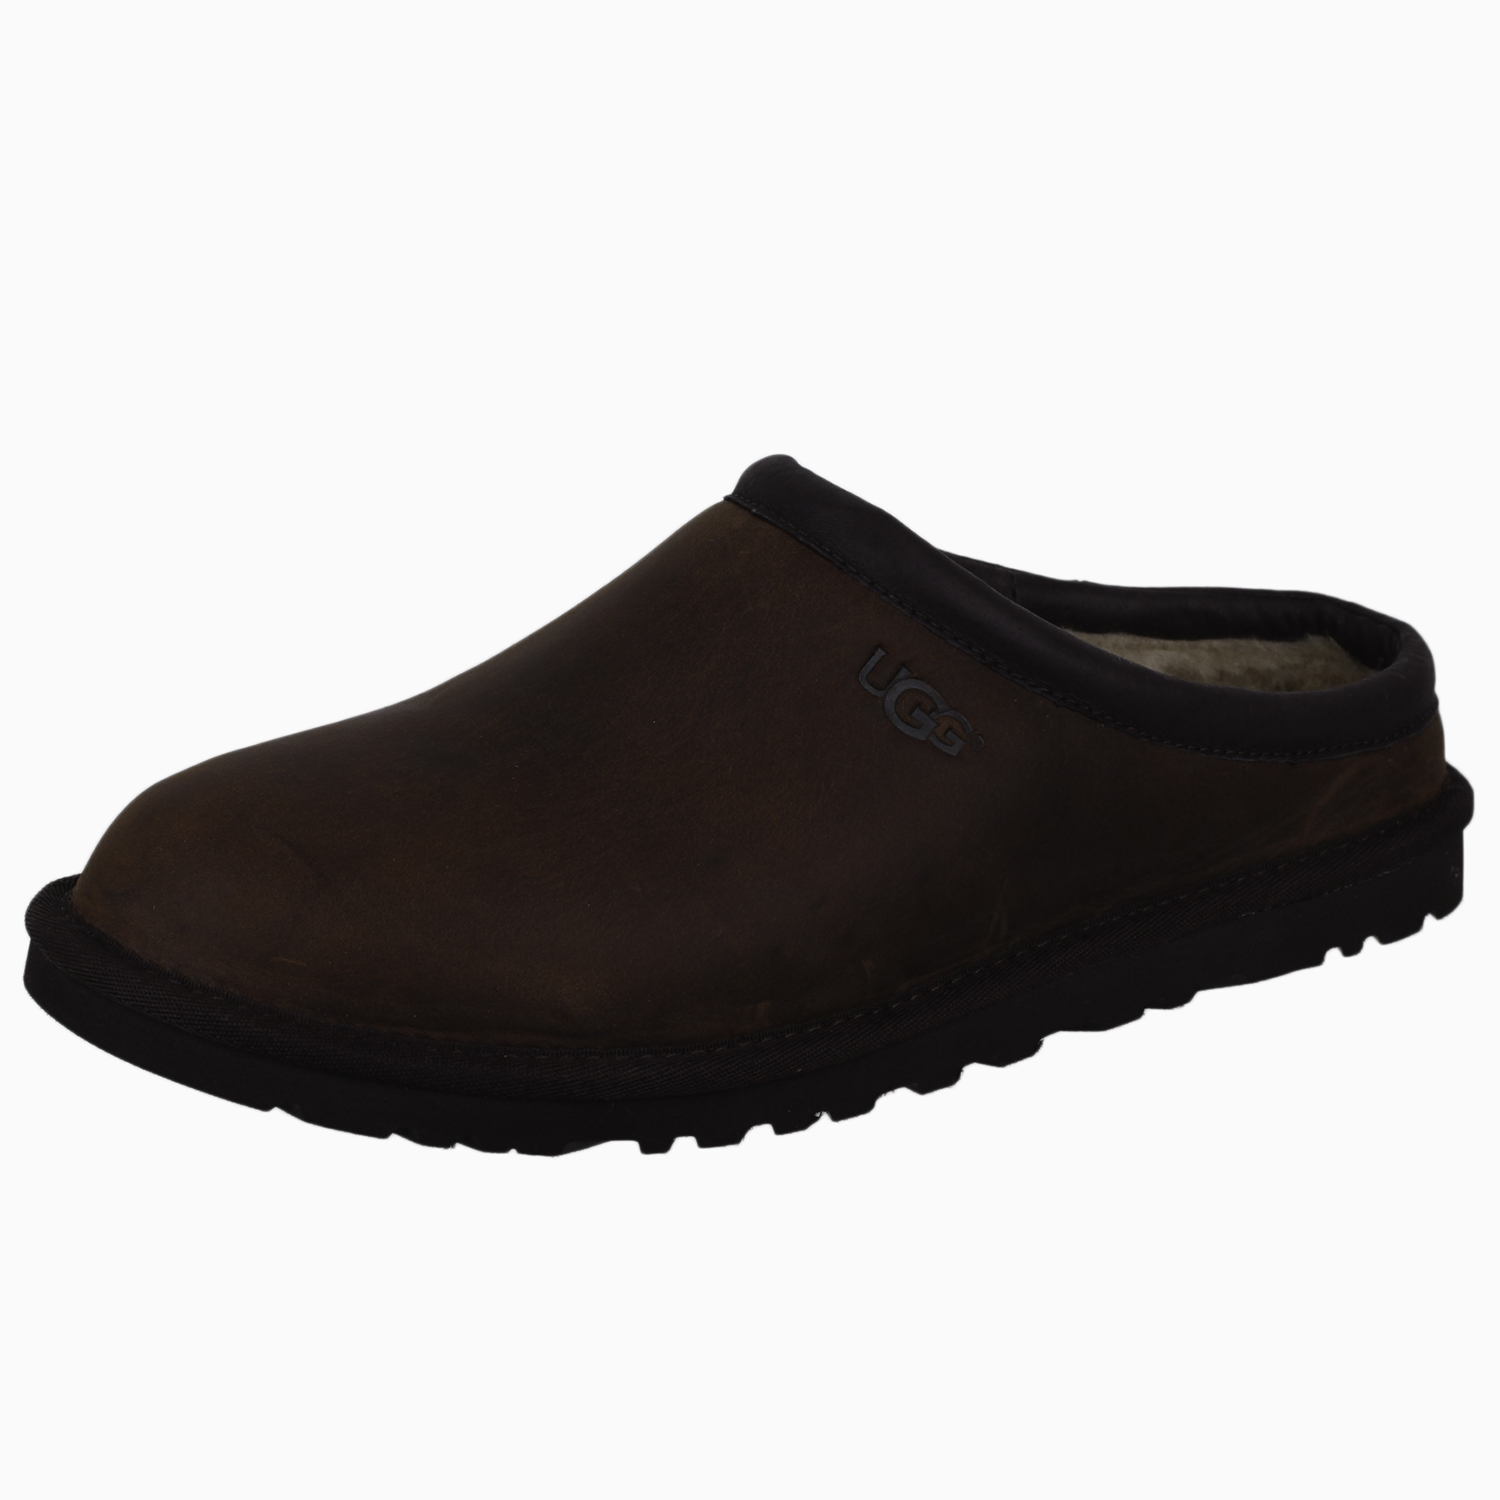 63d7a2d7f92 Details about UGG Men's Classic Clog Slipper Shoes 1011413 Stout